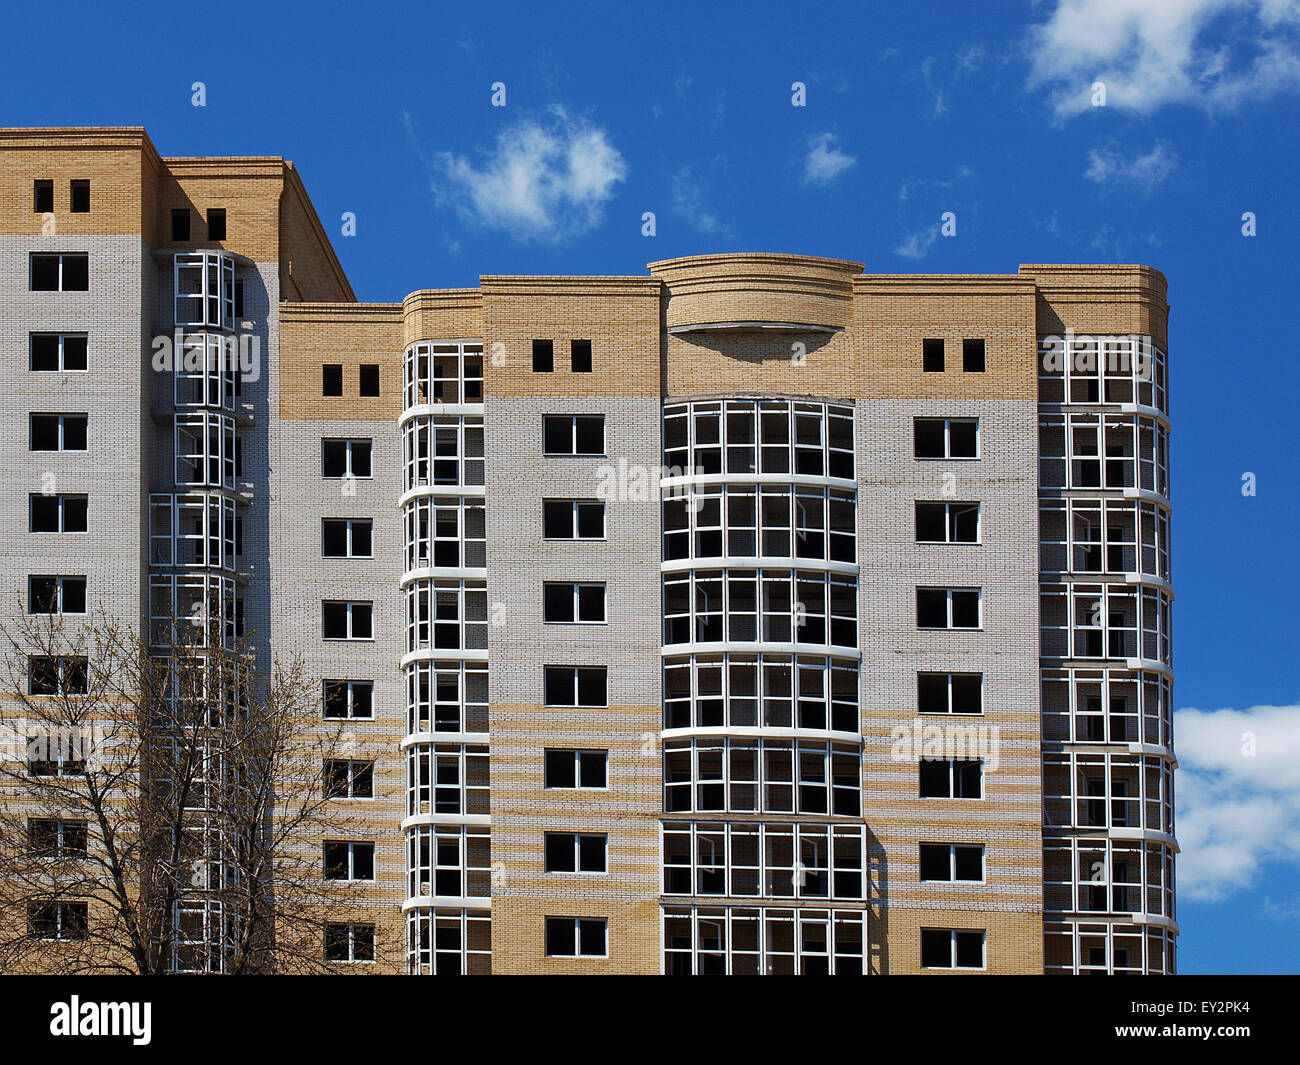 The complex of multistory building against the blue sky without clouds - Stock Image